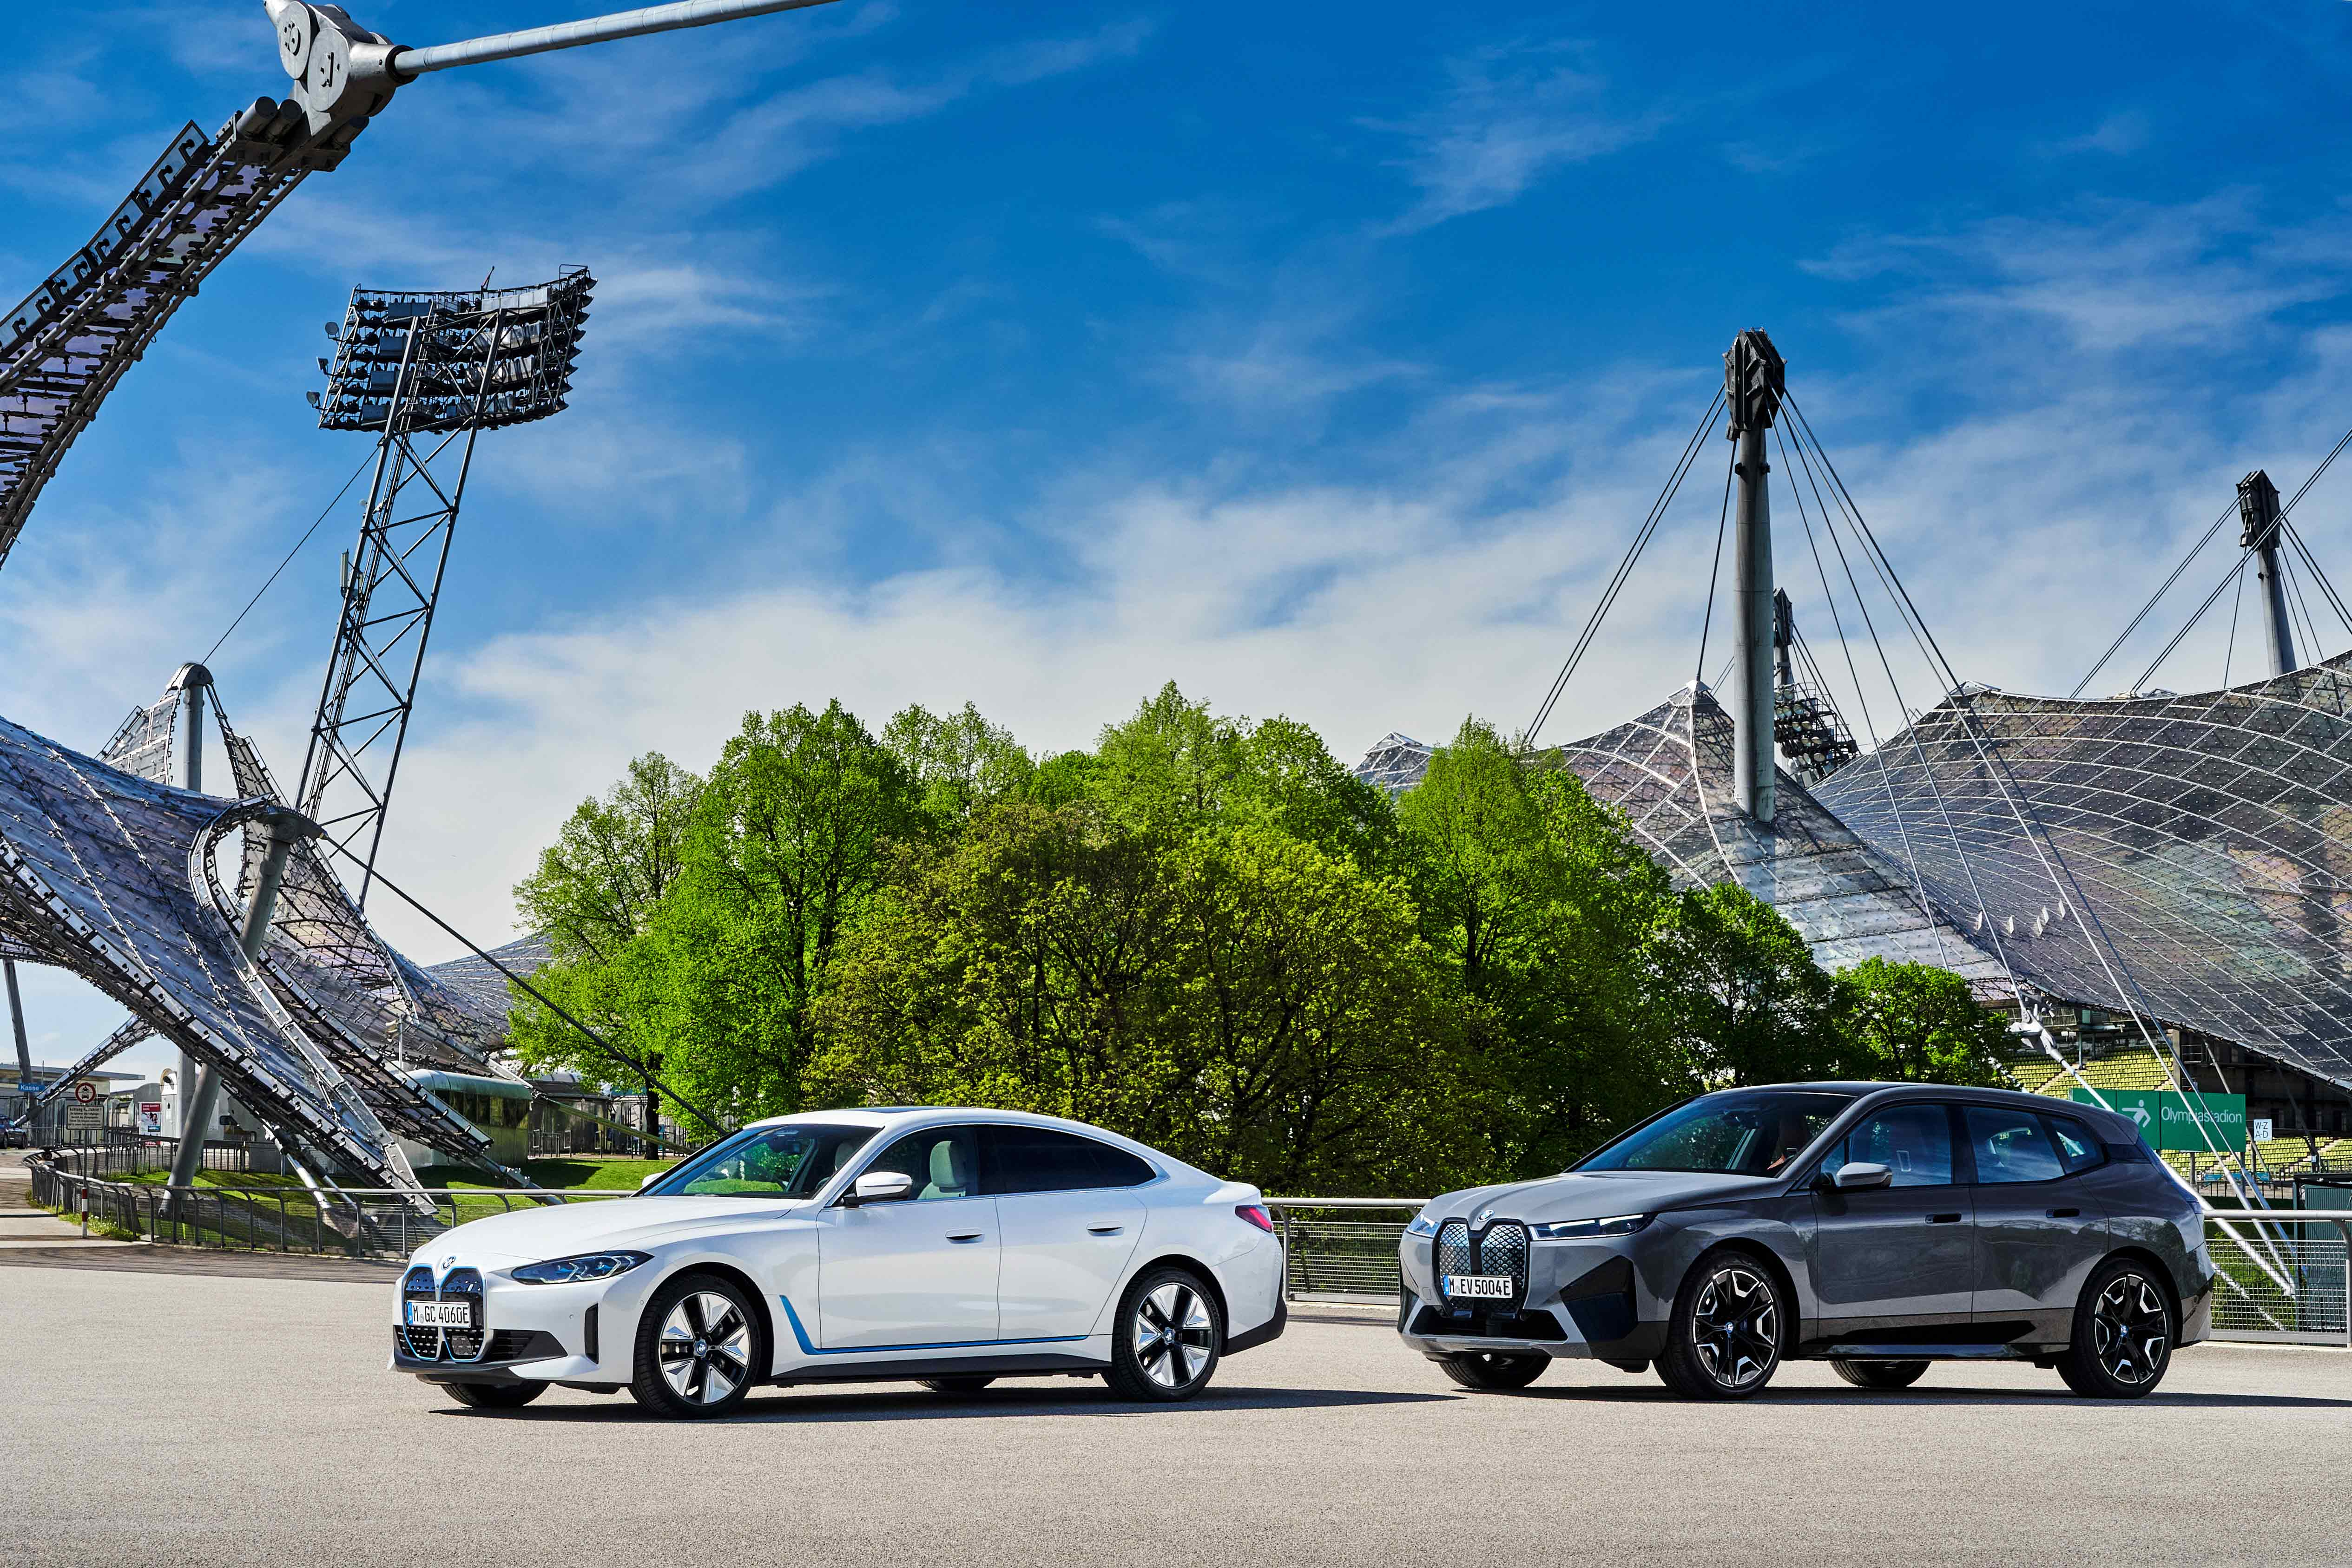 The BMW Group emphasizes its consistent focus on sustainability at the 2021 IAA Mobility